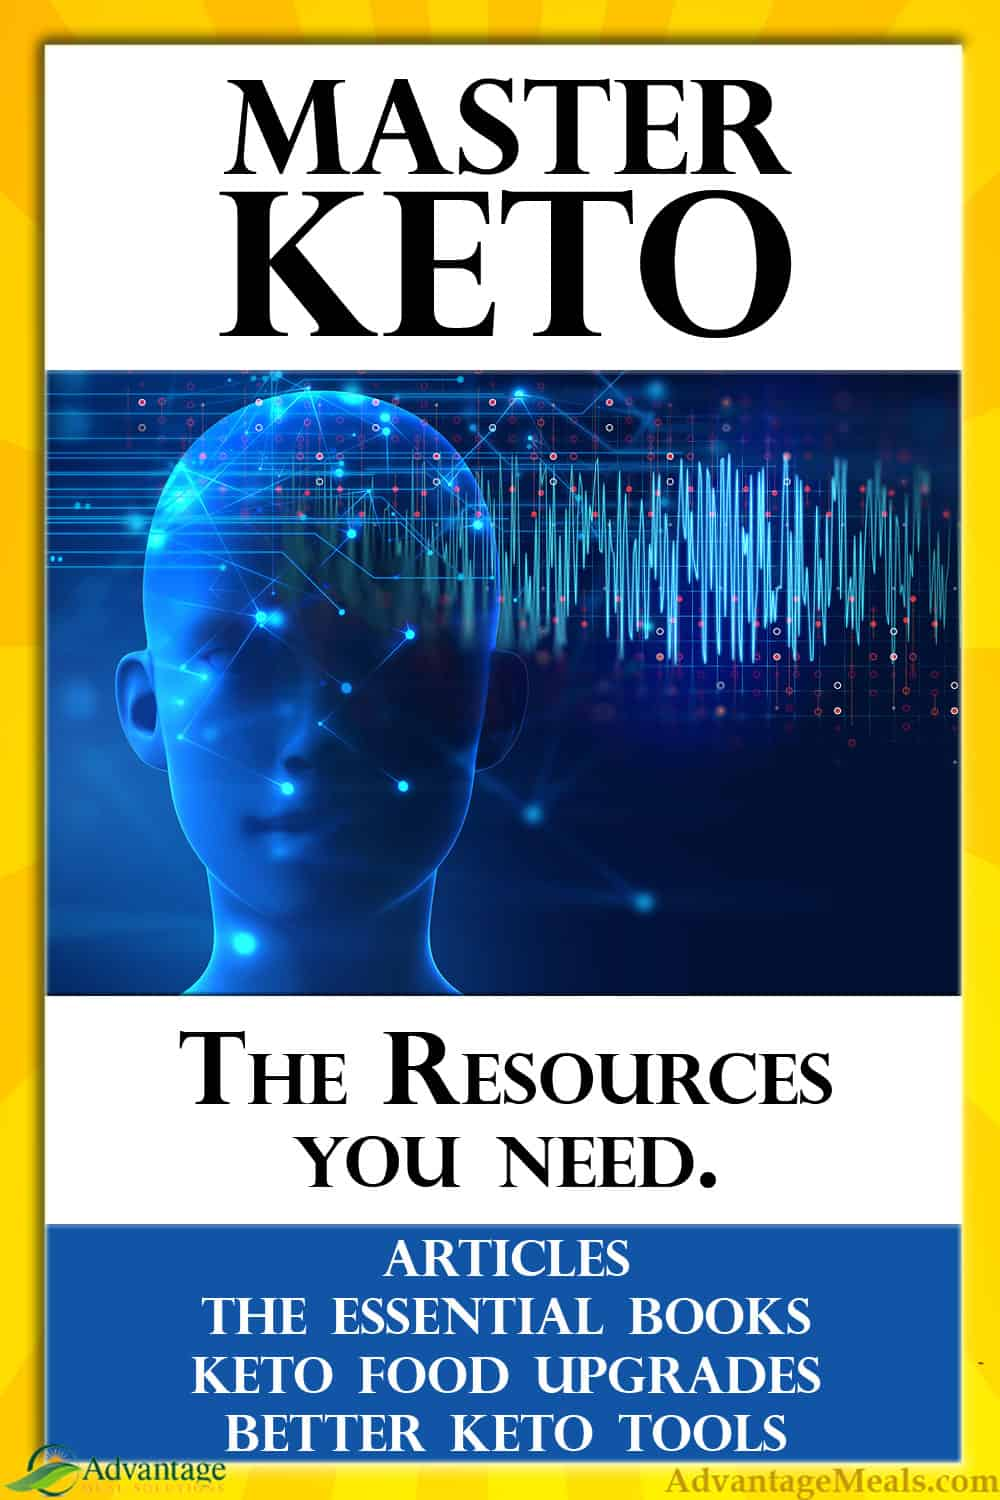 The Essential Resources to begin to Master the Keto Diet.  Keto Articles, The Essential Books, Better Keto Food, Better Keto Tools.  All collected in one easy to use keto resources list. #MasterKeto #AdvantageMeals